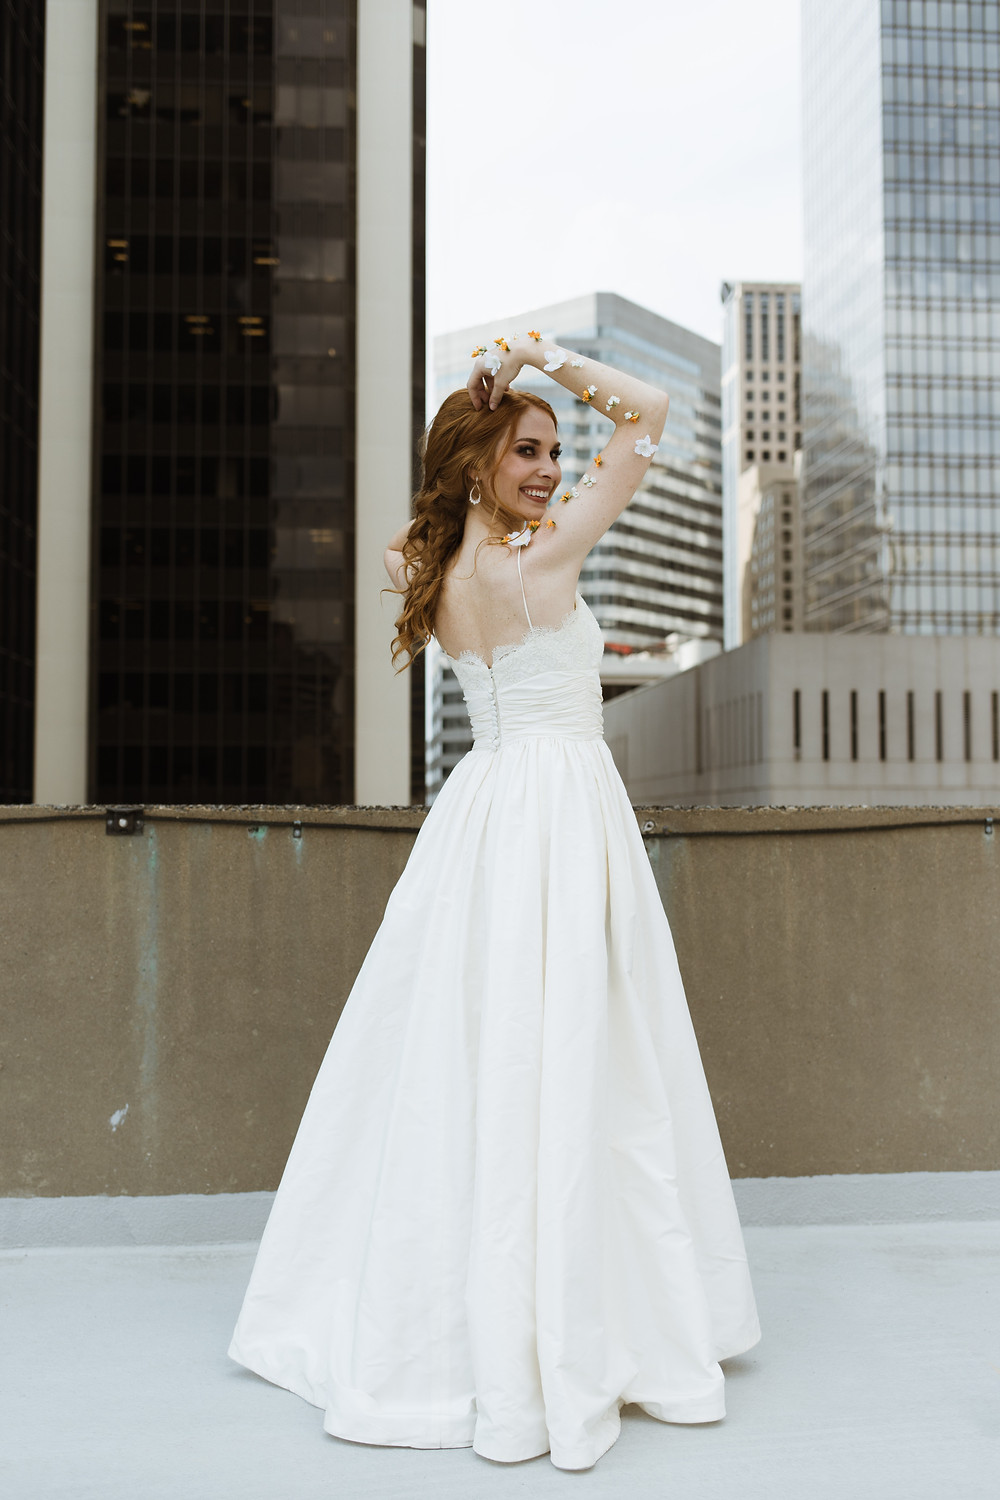 Model bride with uptown charlotte city skyline behind with hair and makeup done